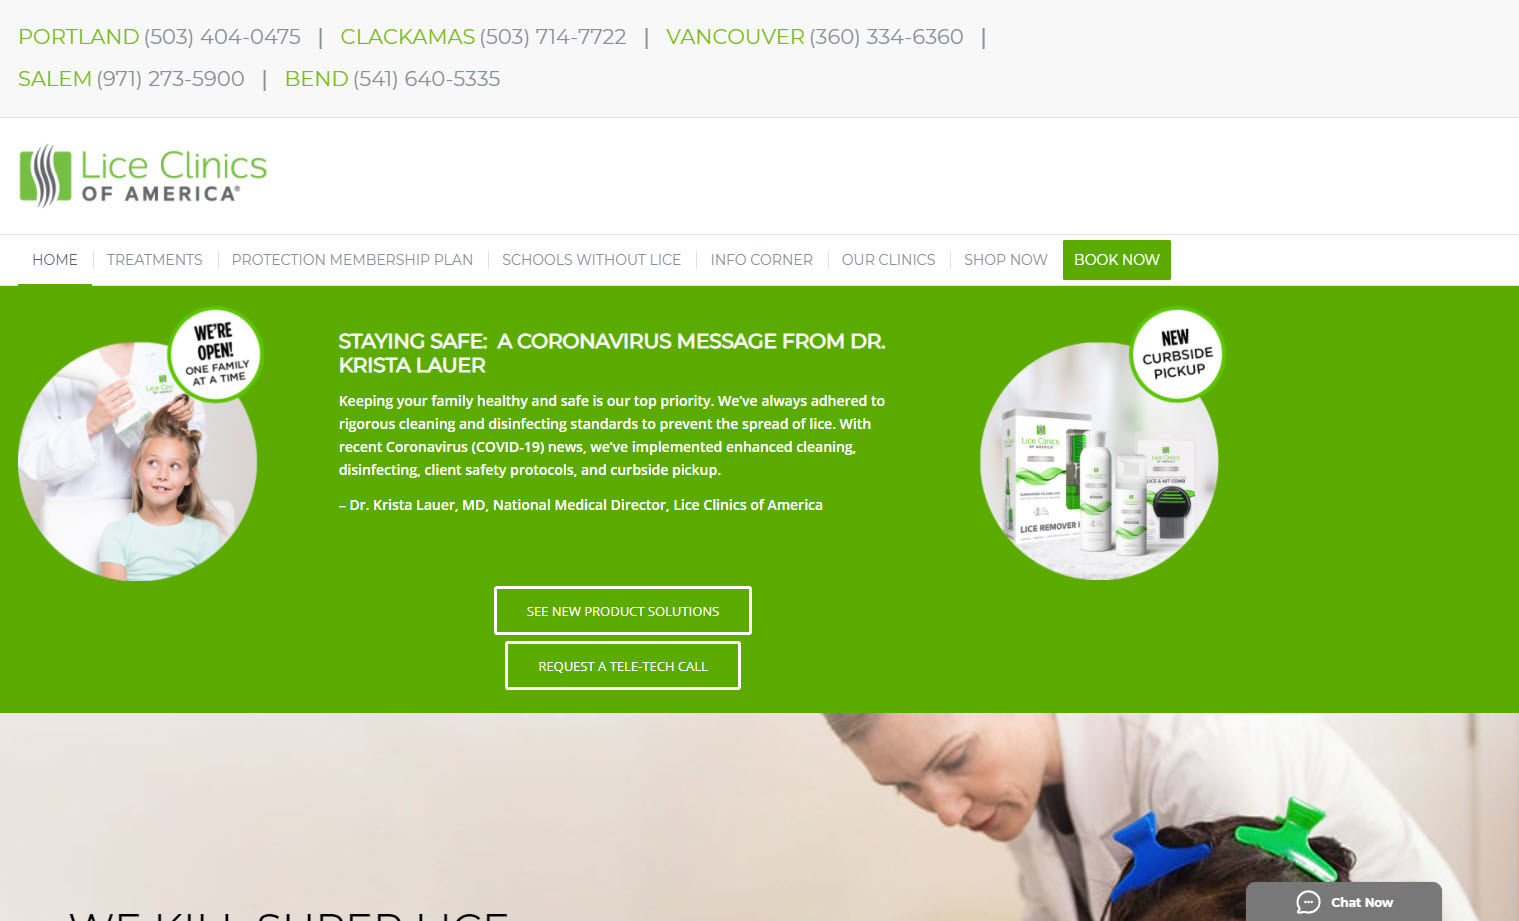 Tab style of the Rake chat widget on the Lice Clinics of America Oregon locations website